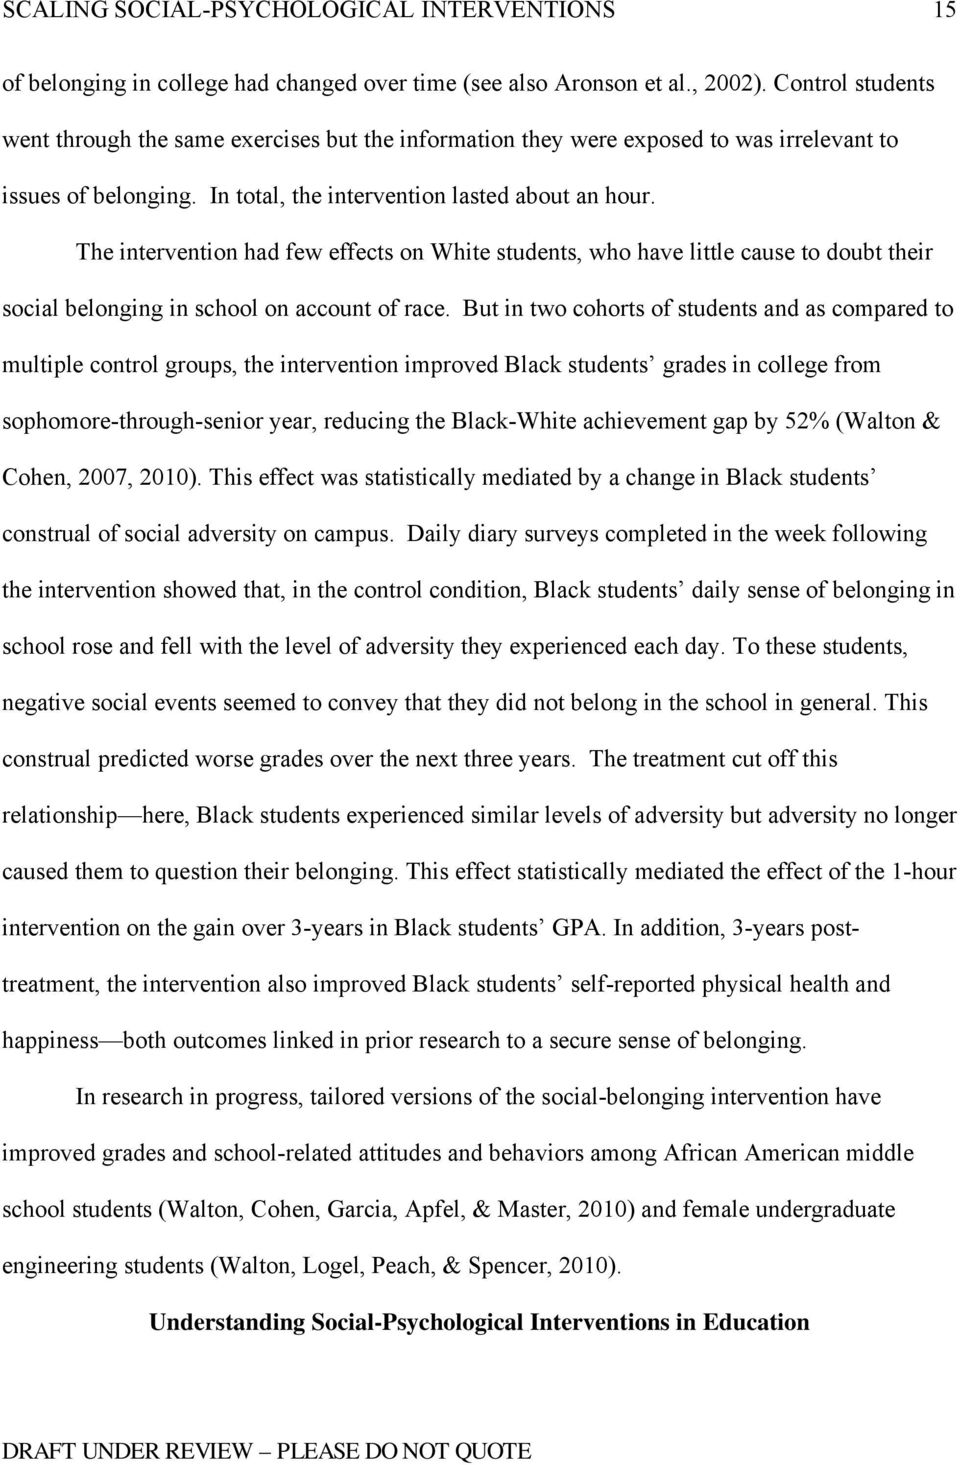 The intervention had few effects on White students, who have little cause to doubt their social belonging in school on account of race.